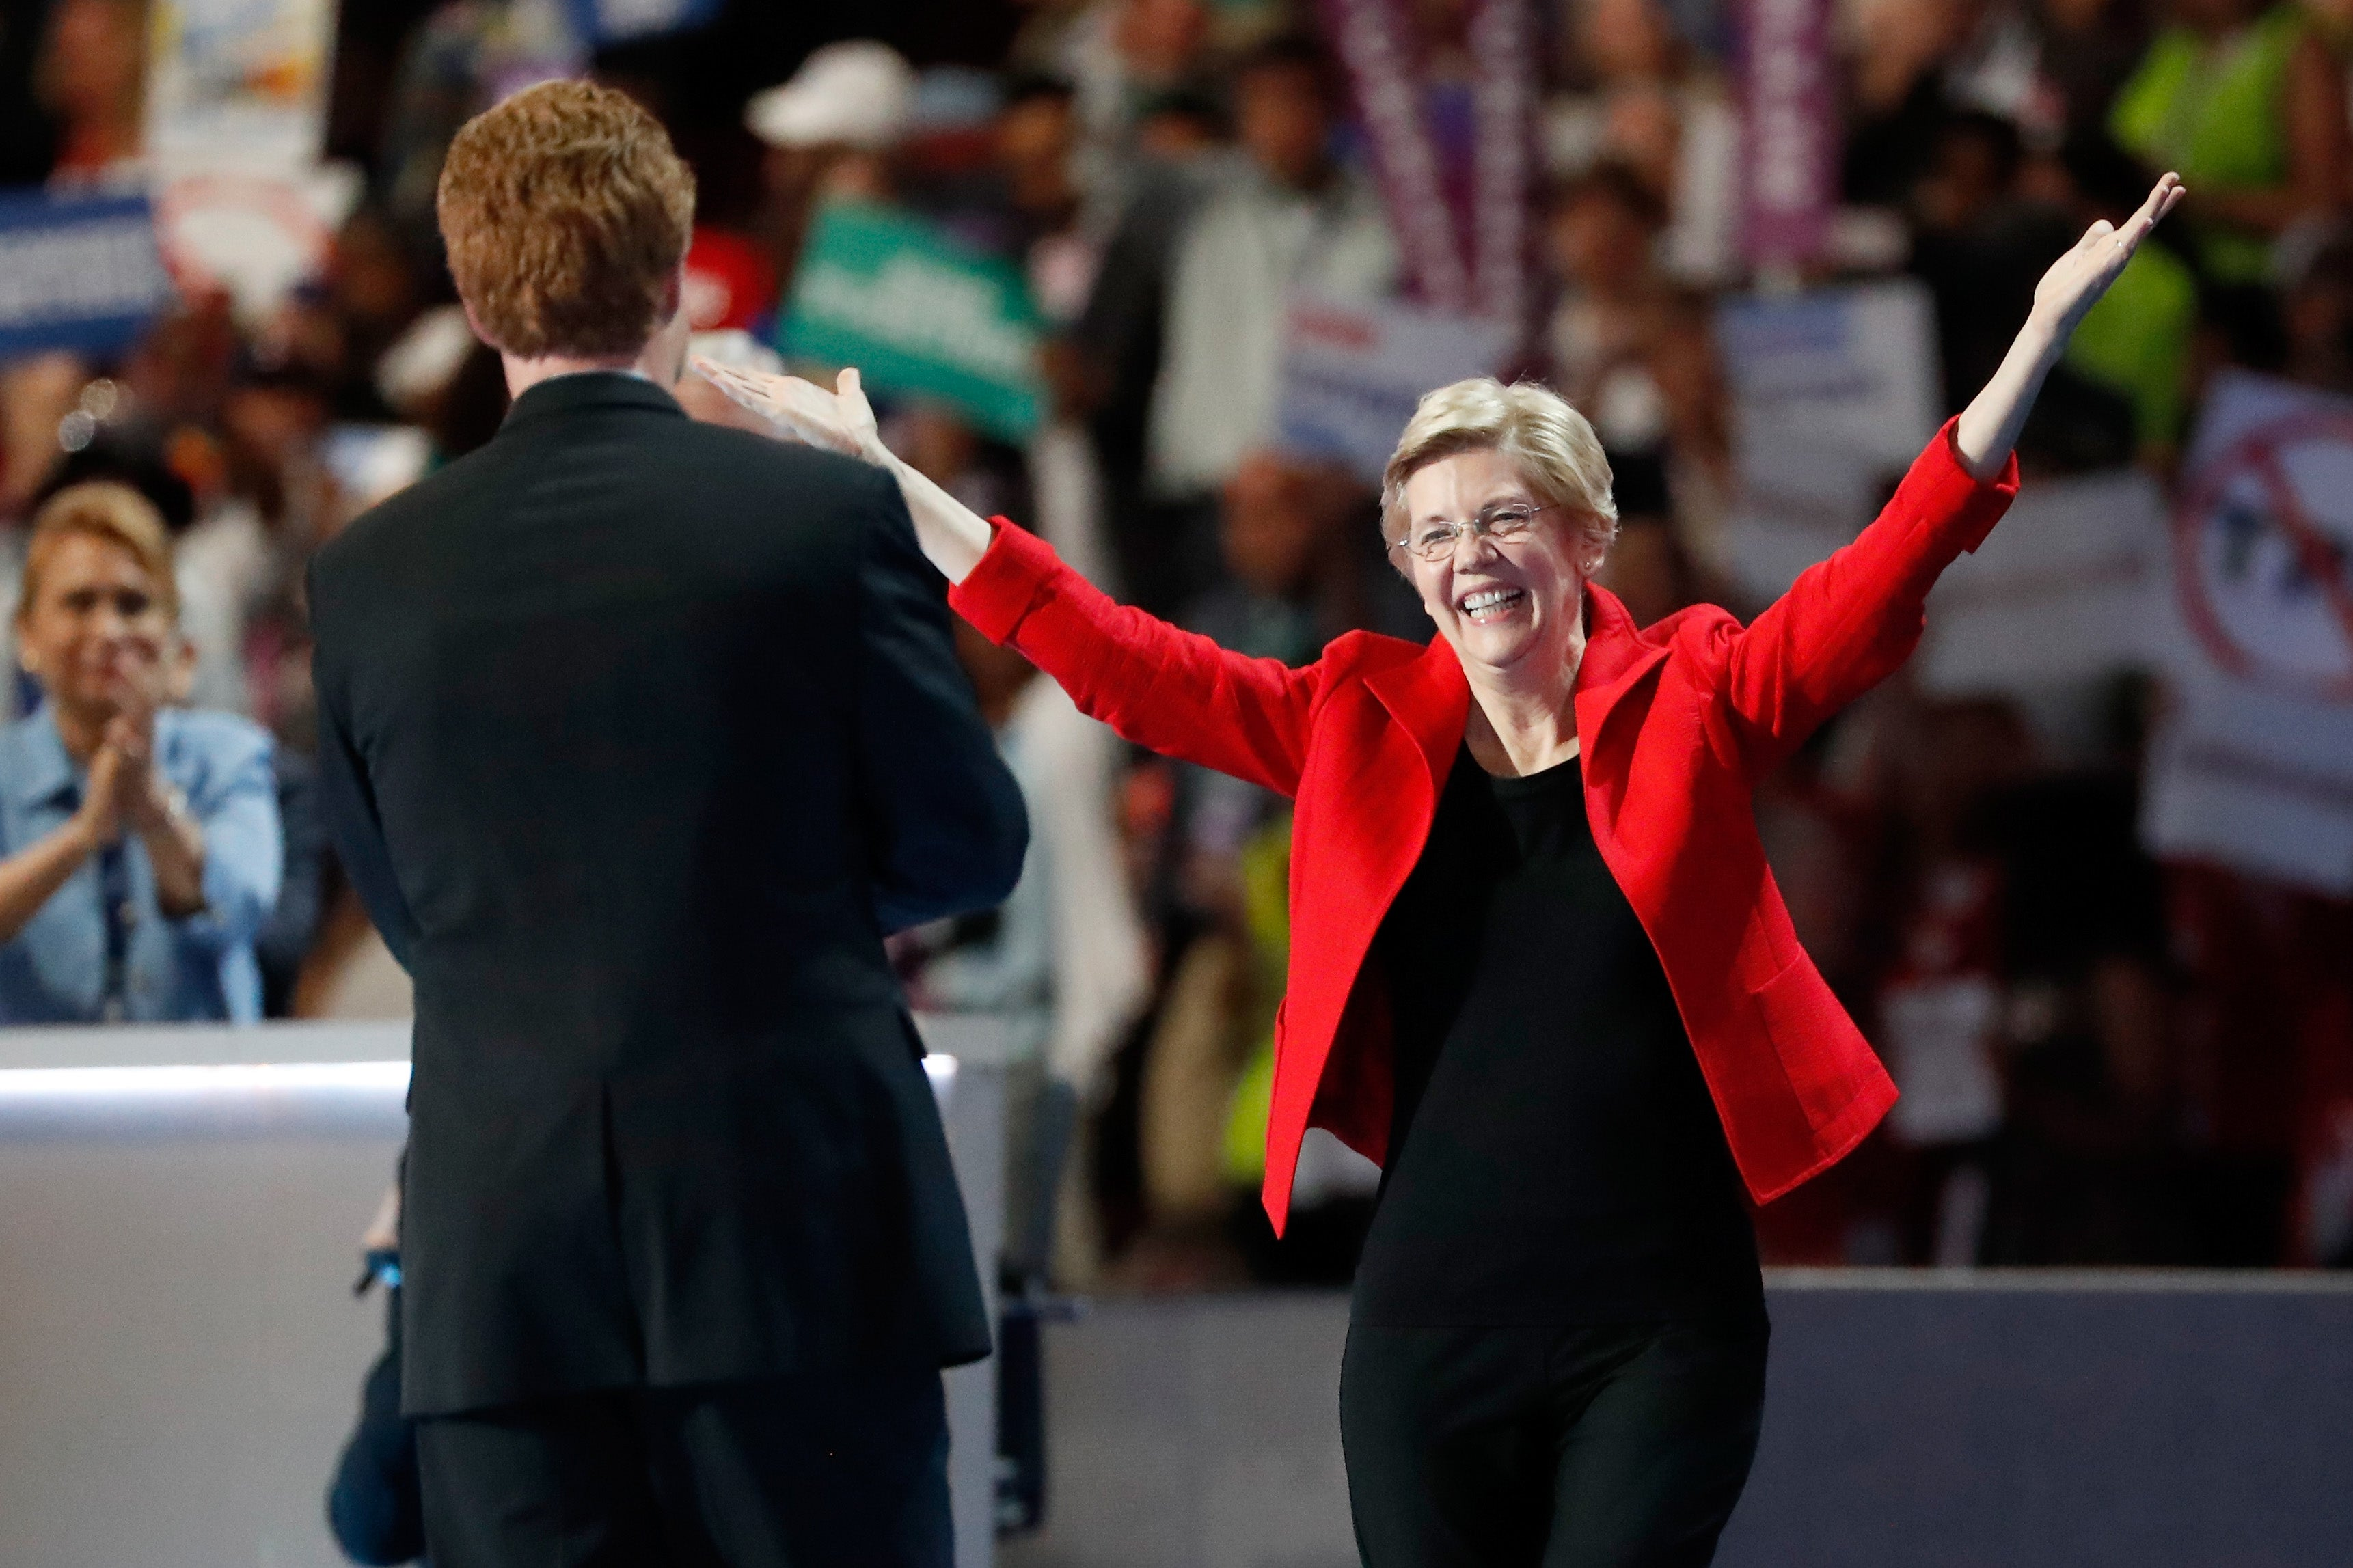 PHILADELPHIA, PA - JULY 25: Sen. Elizabeth Warren (D-MA) gestures after being introduced by Rep. Joseph P. Kennedy, III (D-MA) (L) on the first day of the Democratic National Convention at the Wells Fargo Center, July 25, 2016 in Philadelphia, Pennsylvania. An estimated 50,000 people are expected in Philadelphia, including hundreds of protesters and members of the media. The four-day Democratic National Convention kicked off July 25. (Photo by Aaron P. Bernstein/Getty Images)